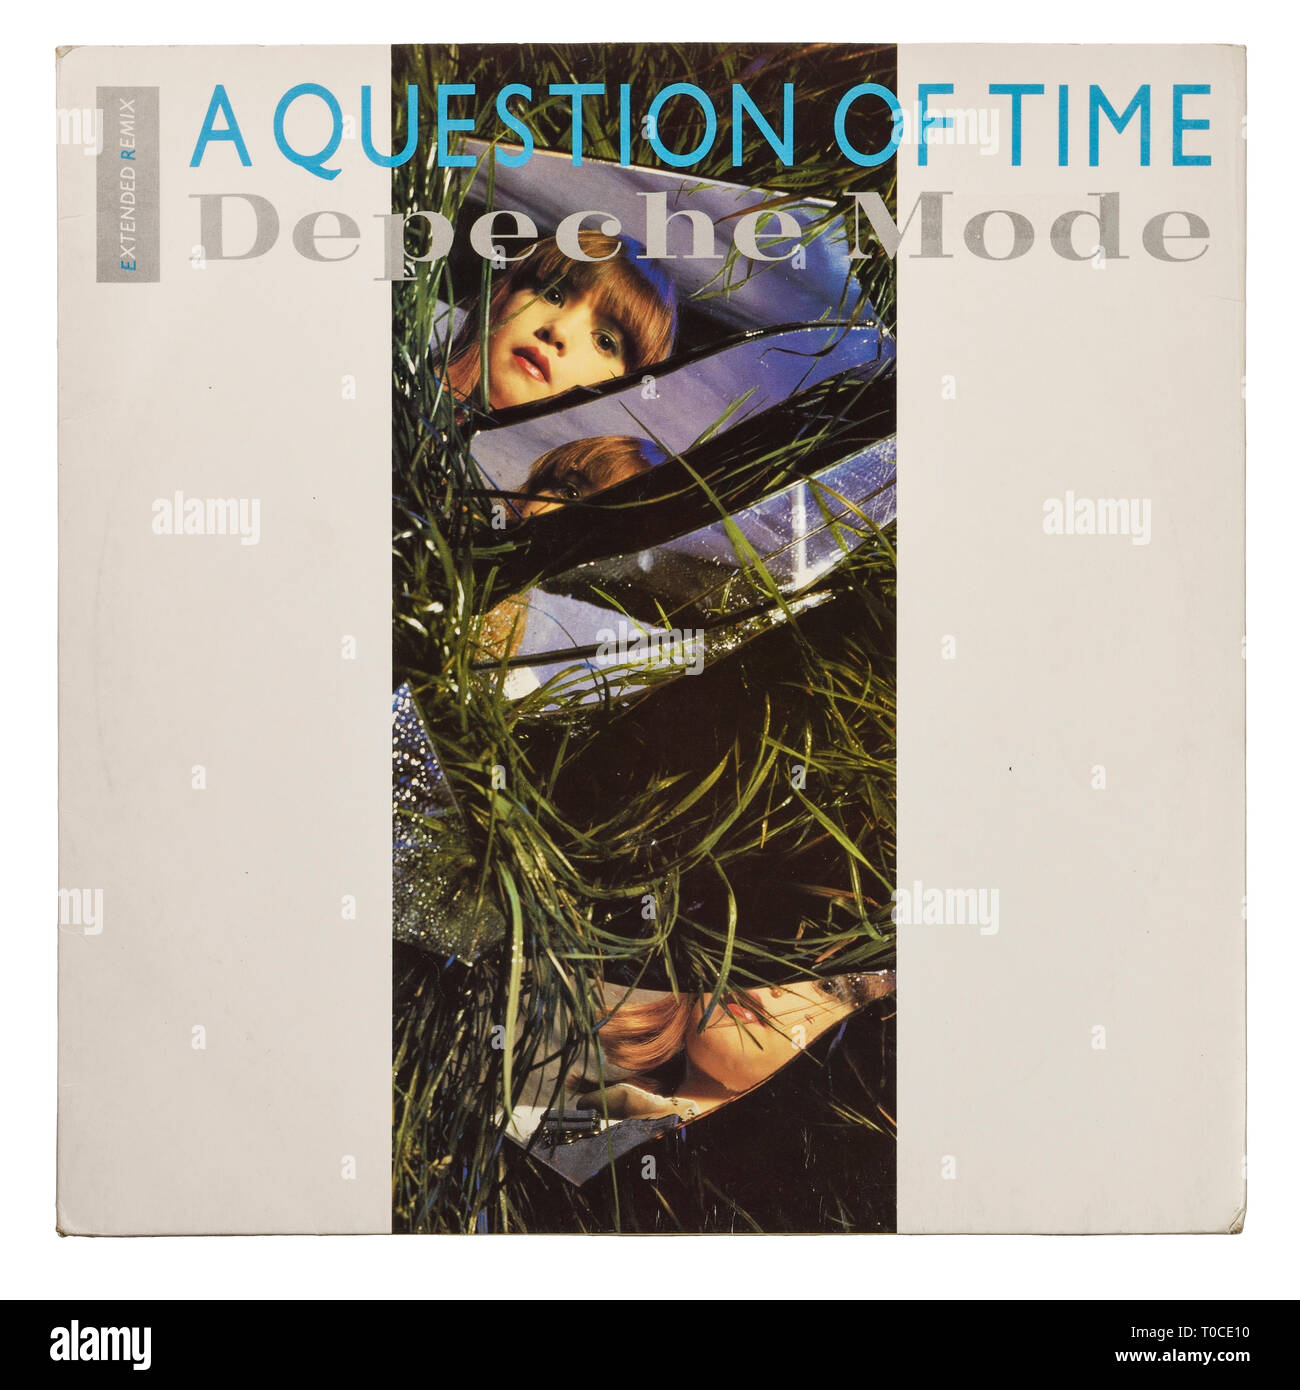 The vinyl 12 inch single sleeve for A Question of Time by Depeche Mode - Stock Image